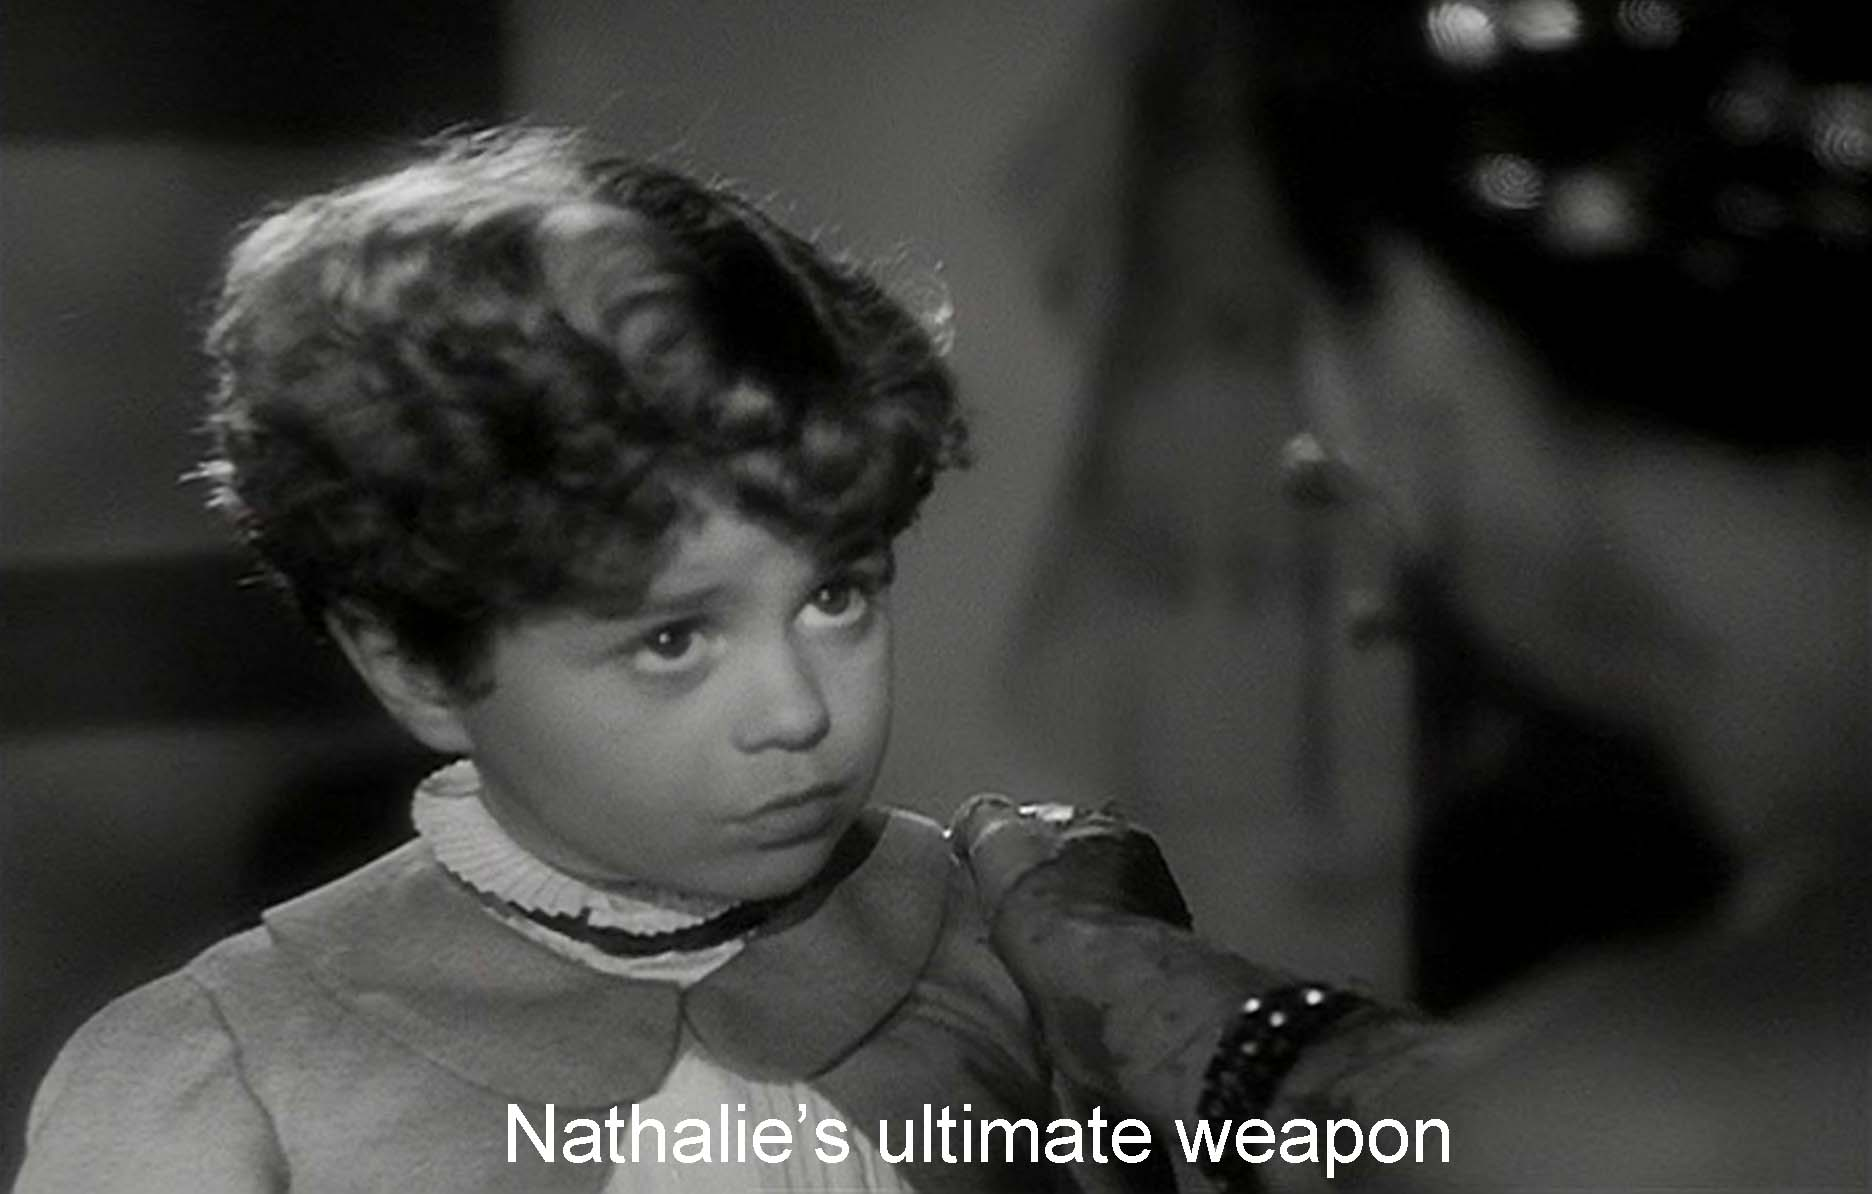 Nathalie's ultimate weapon